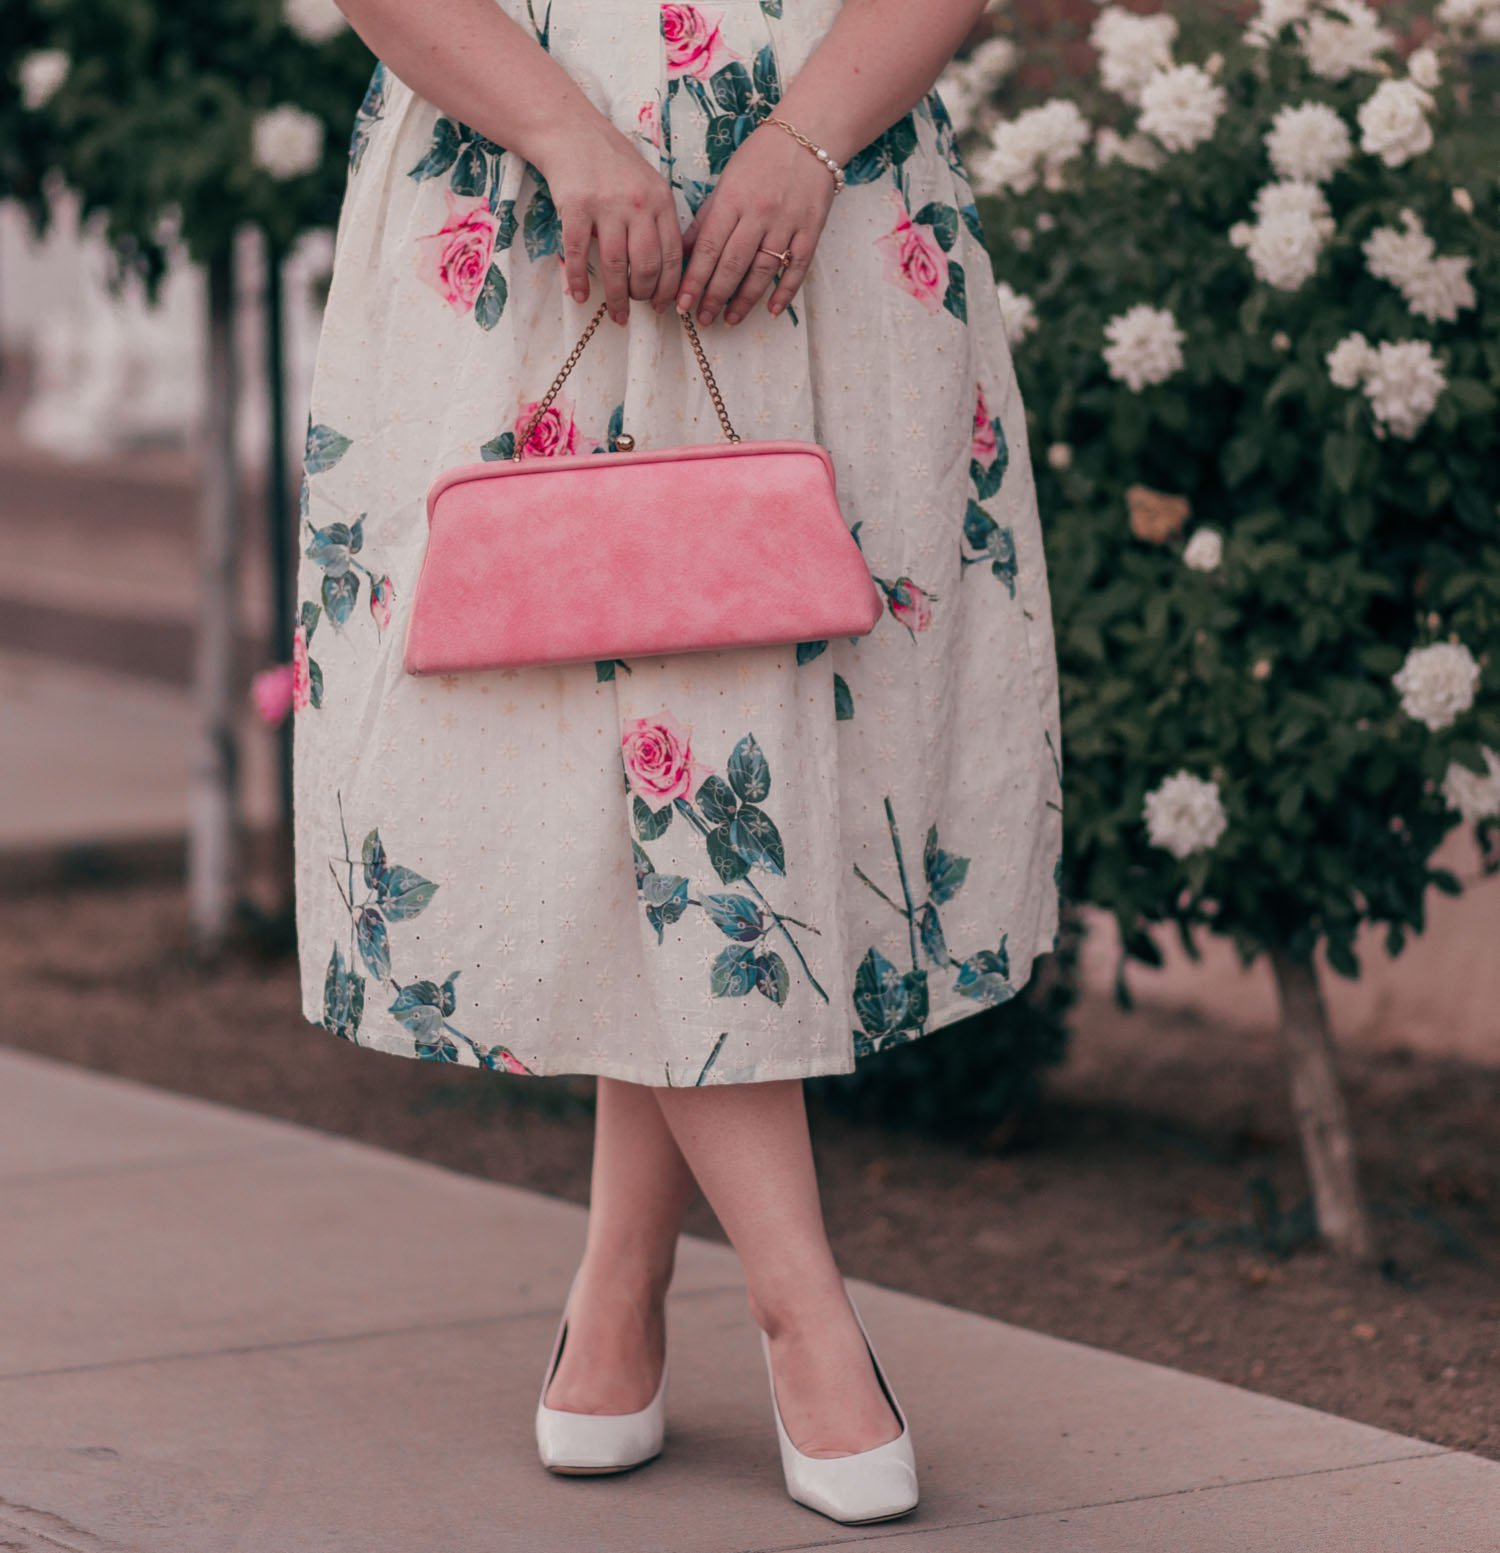 Feminine fashion blogger Elizabeth Hugen of Lizzie in Lace shares a pretty pastel vintage inspired floral skirt outfit with a Chicwish skirt and Franco Sarto heels